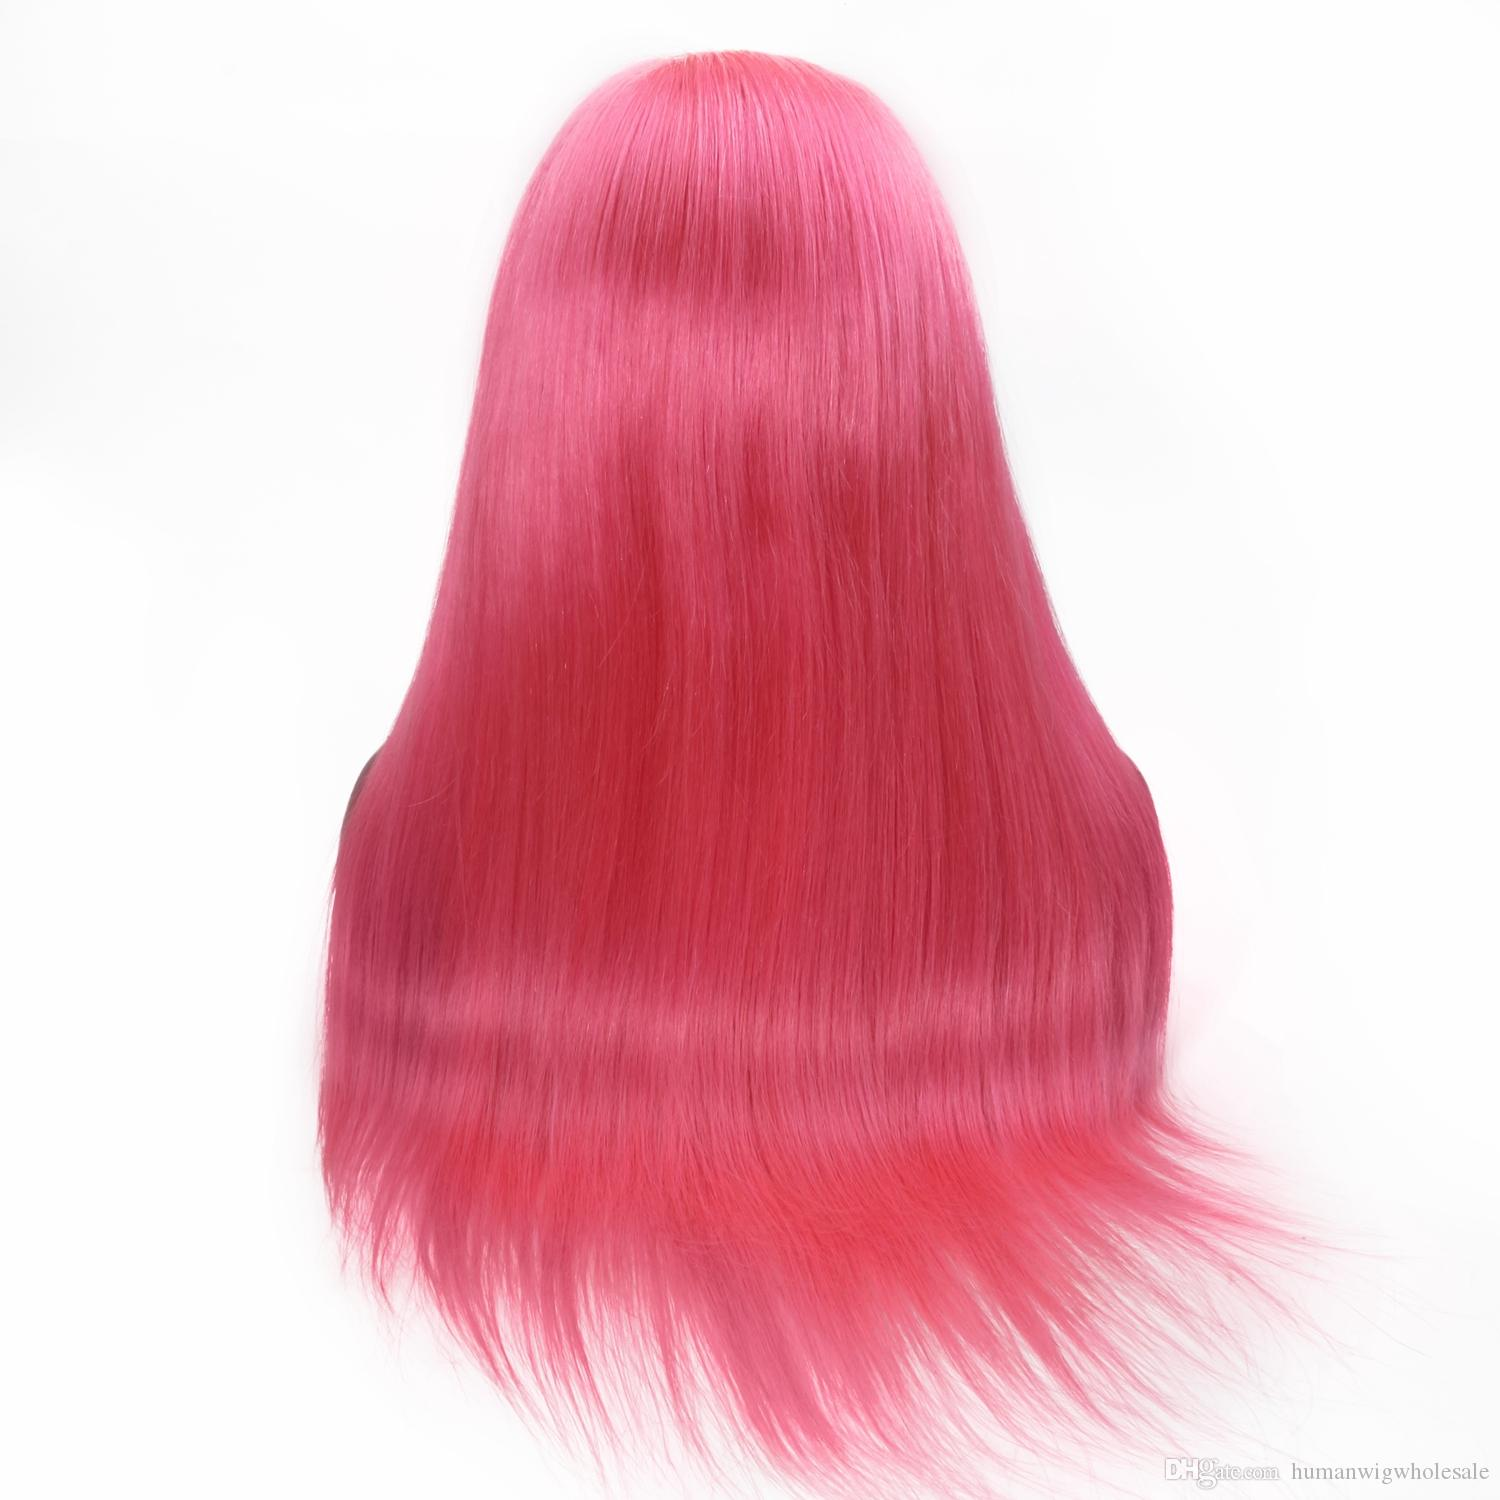 Wholesale Real Human Pink Straight FulllaceWig Selling directly from Factory With Best Quality Tangle free Glueless Wig Via Fast Shipping